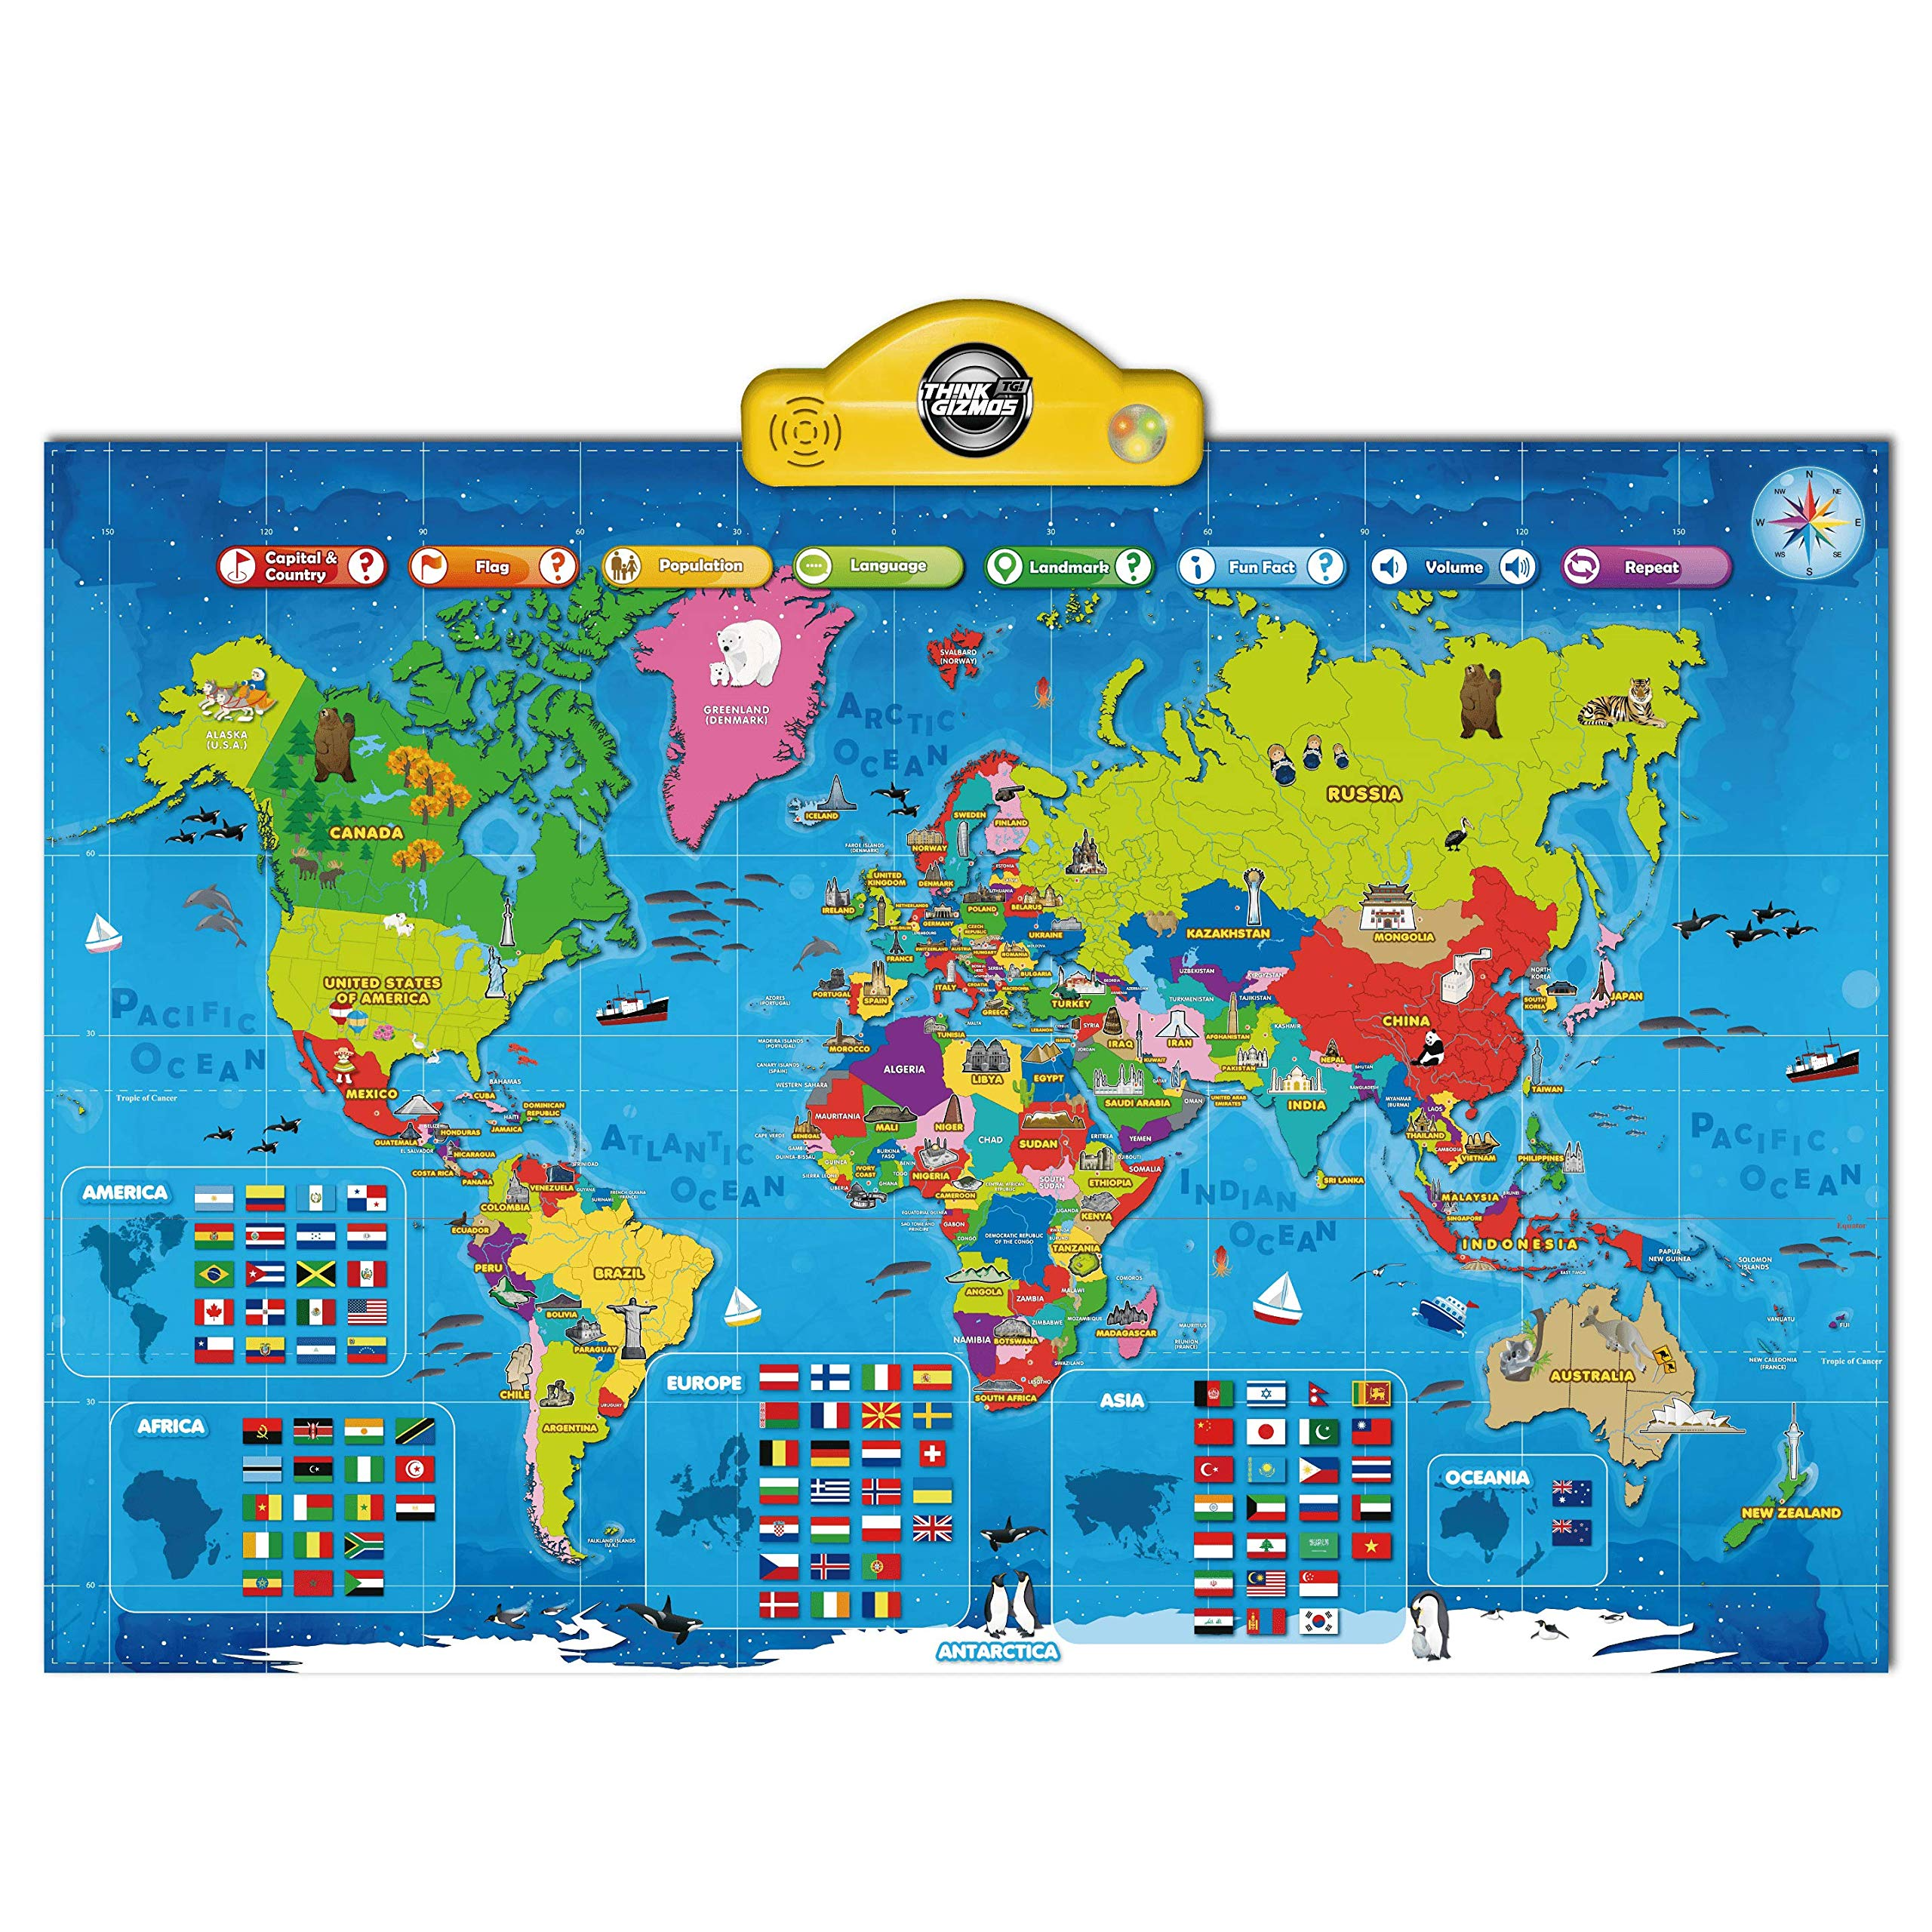 Interactive Talking World Map for Kids TG661 - Push, Learn and Discover Over 1000 Facts About Our World - Ideal Interactive Learning Toy Gift for Boys & Girls Aged 5,6,7,8,9,10 - by ThinkGizmos by Think Gizmos